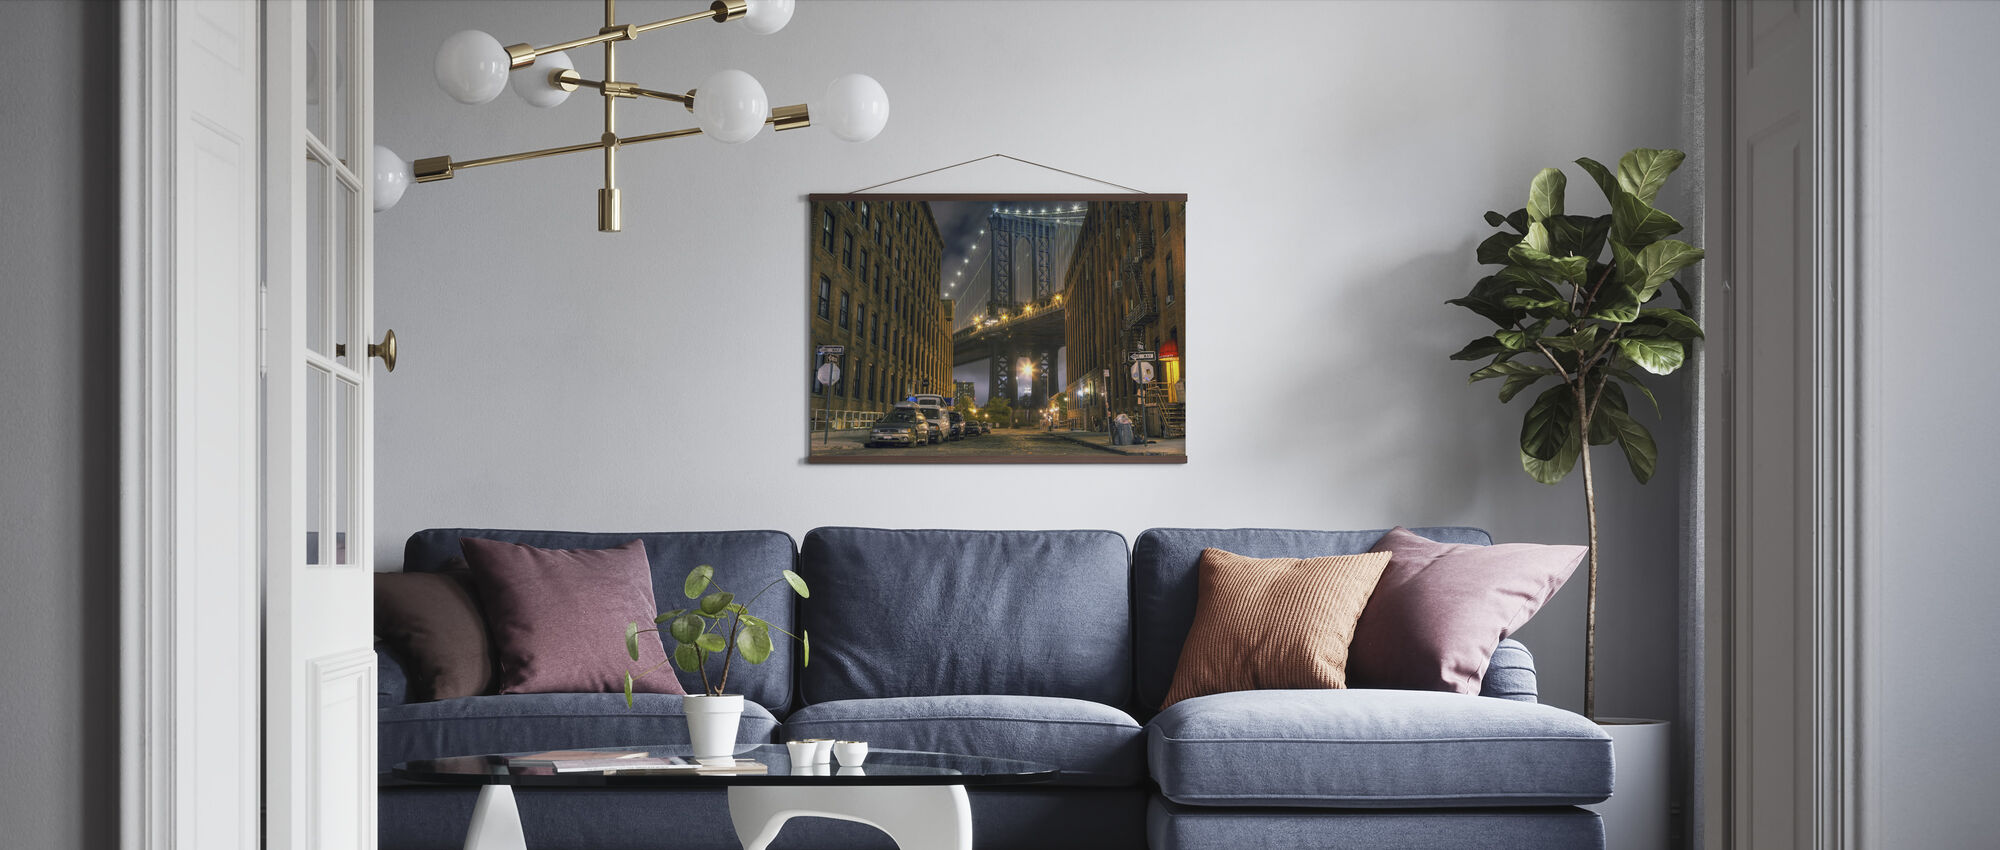 Washington Street, Manhattan, New York - Poster - Living Room